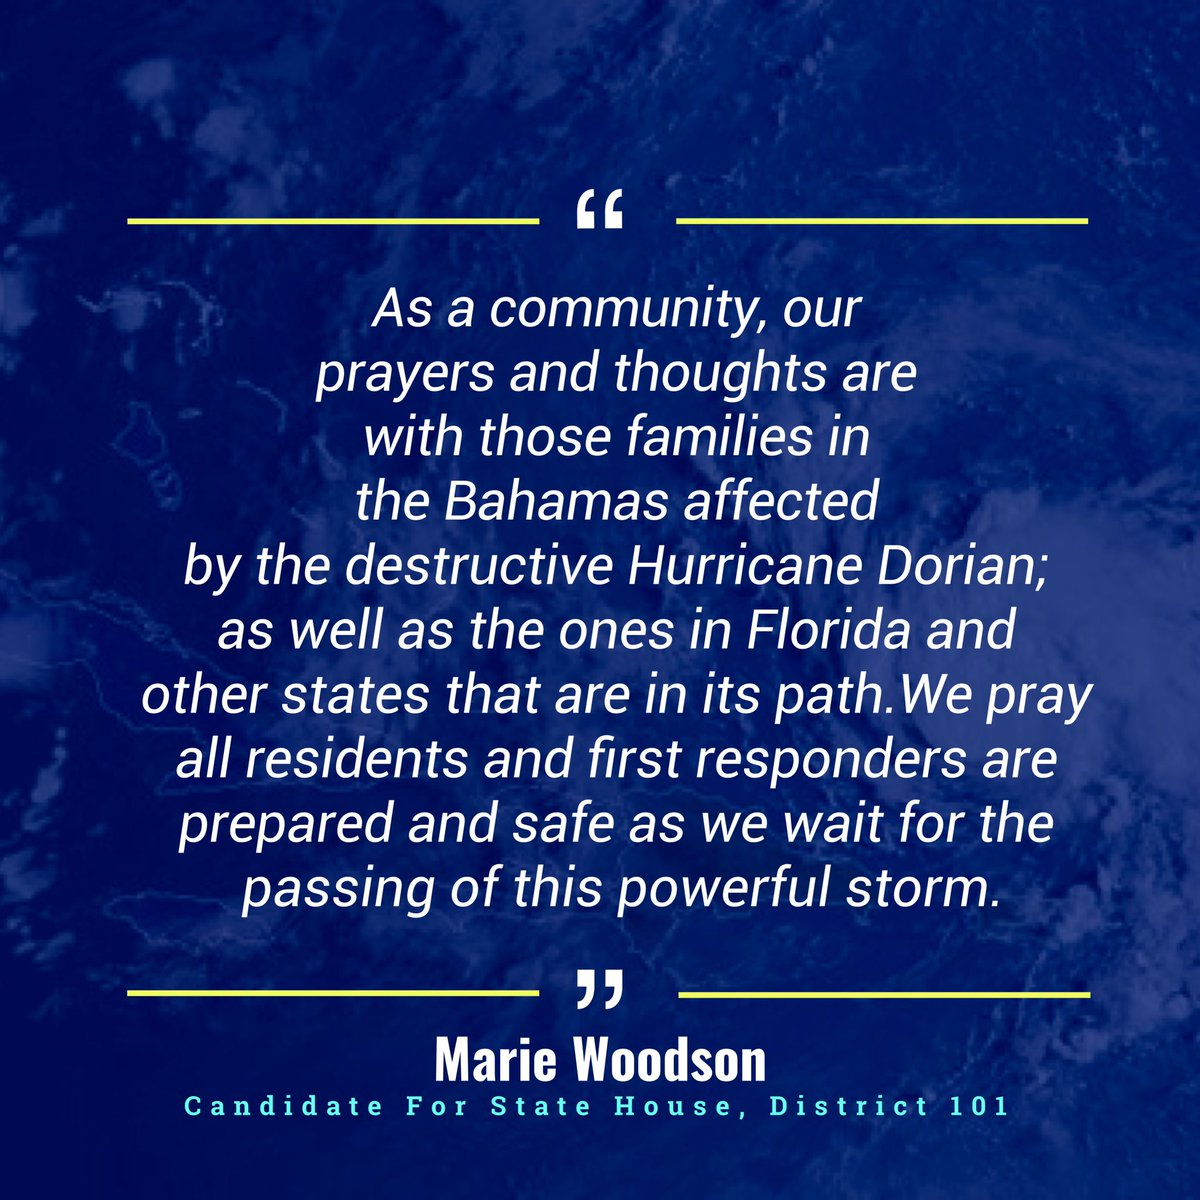 As always, our community will come together to assist those affected by Dorian. Let's continue to pray for our brothers and sisters who are currently dealing with its destruction.⁣⁣ ⁣⁣ #HurricaneDorian